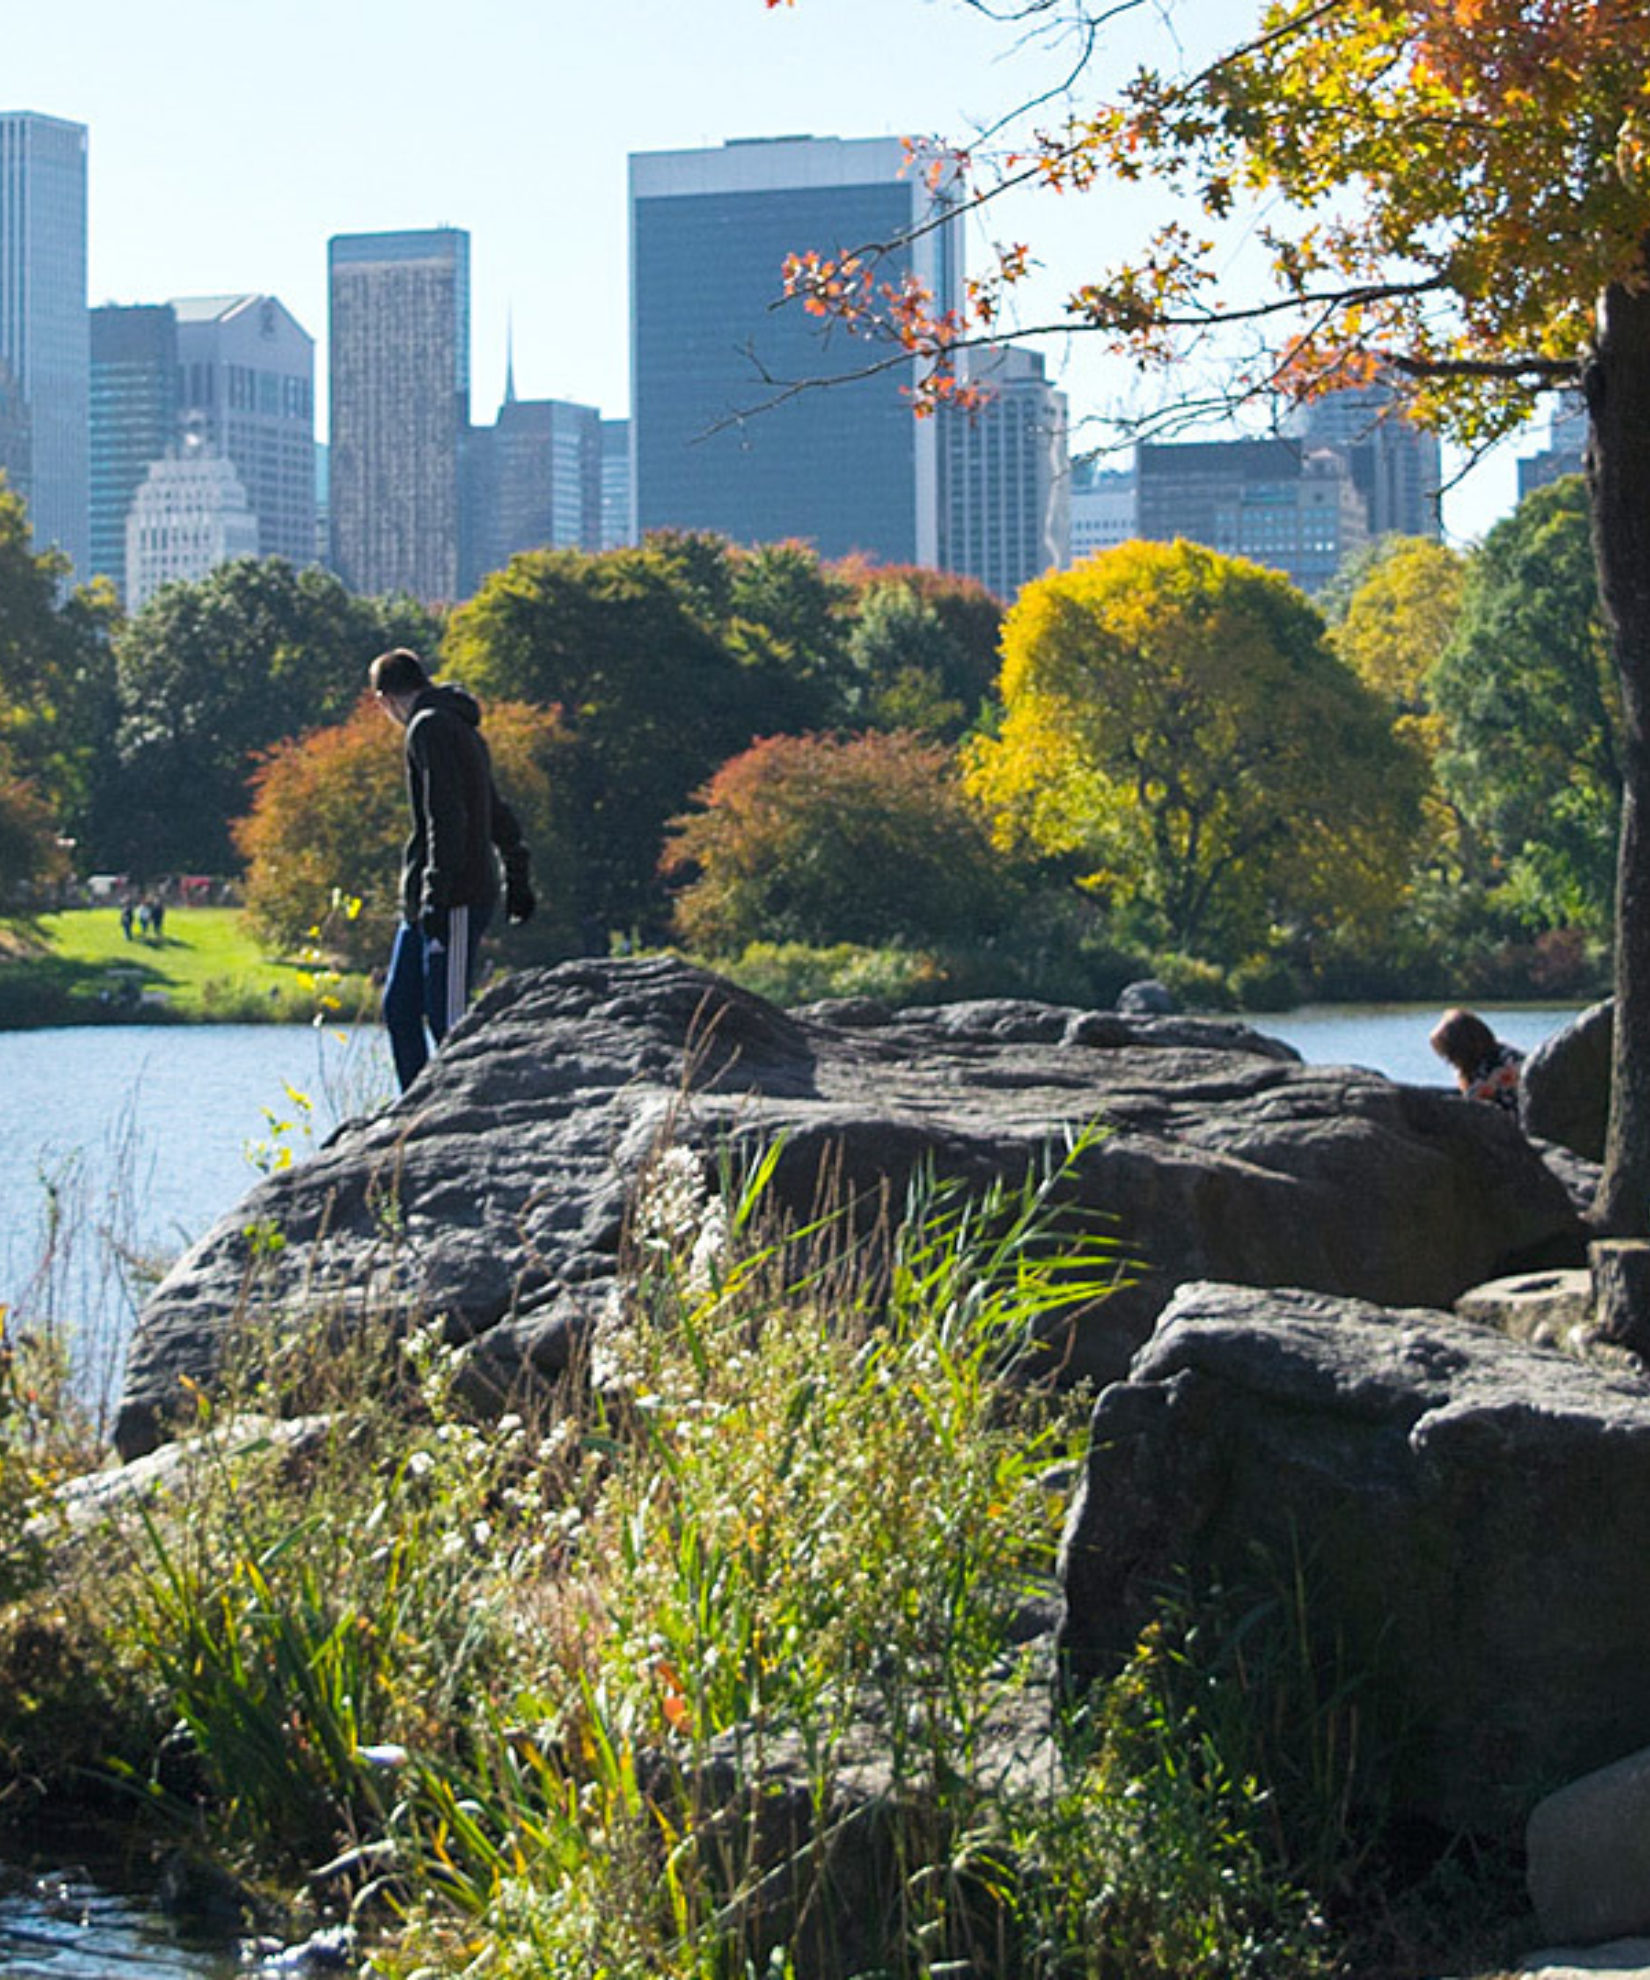 A view of Hernshead, with the NYC skyline in the background